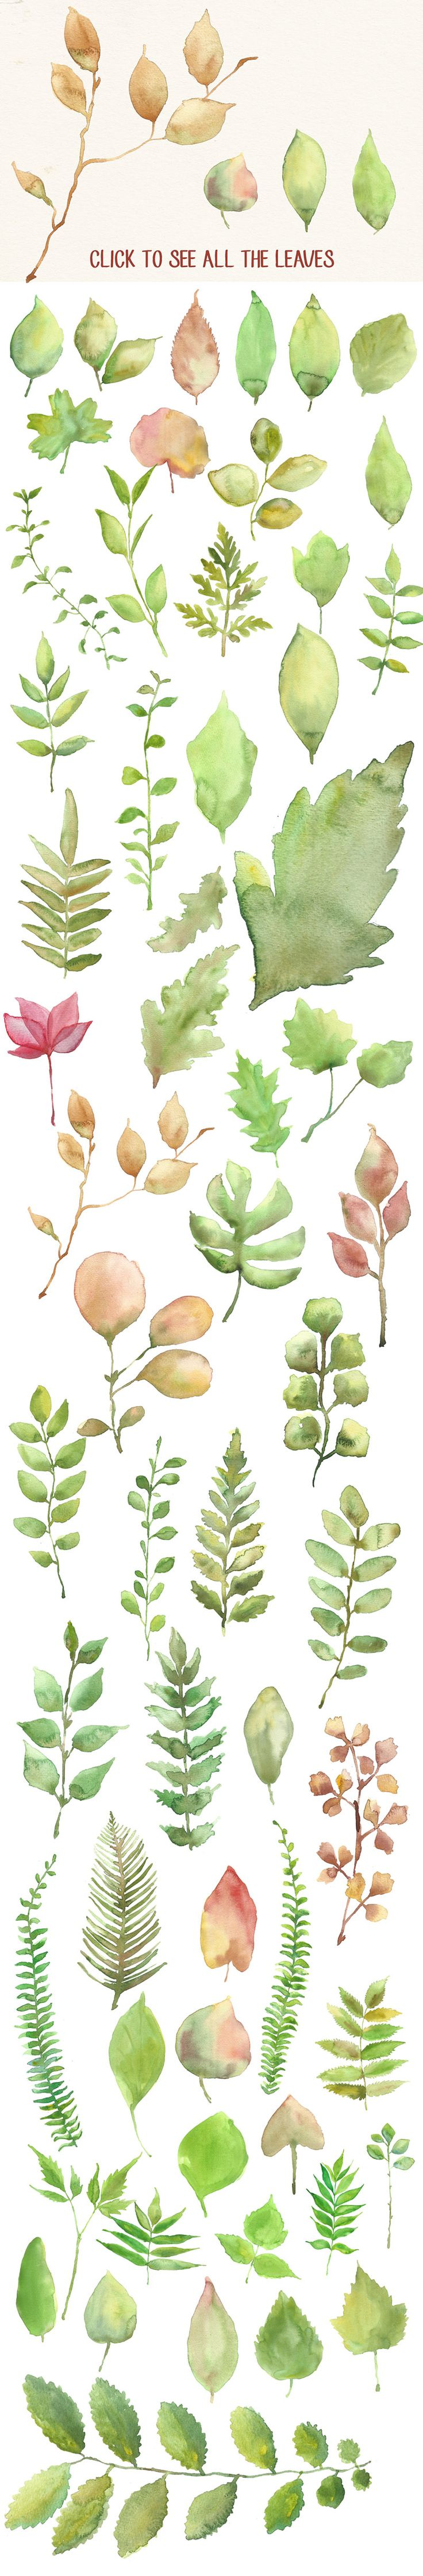 Watercolor Flowers and Leaves Pack by Anna Ivanir